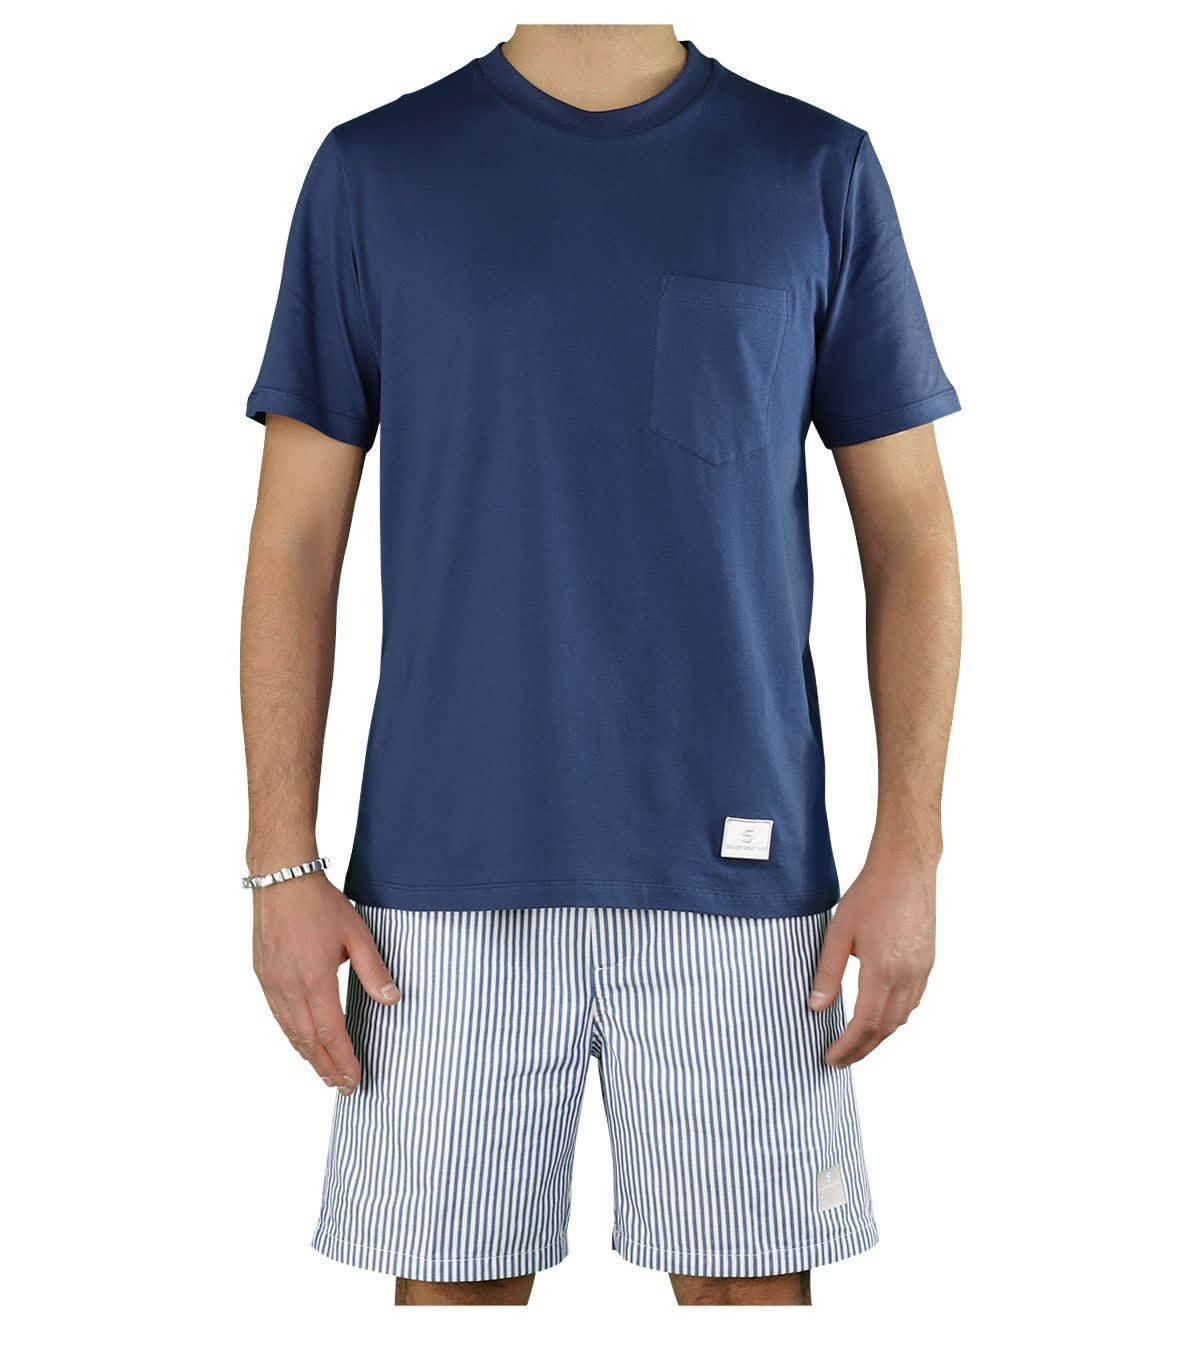 Department 5 MARTIN NAVY BLUE T-SHIRT WITH POCKET